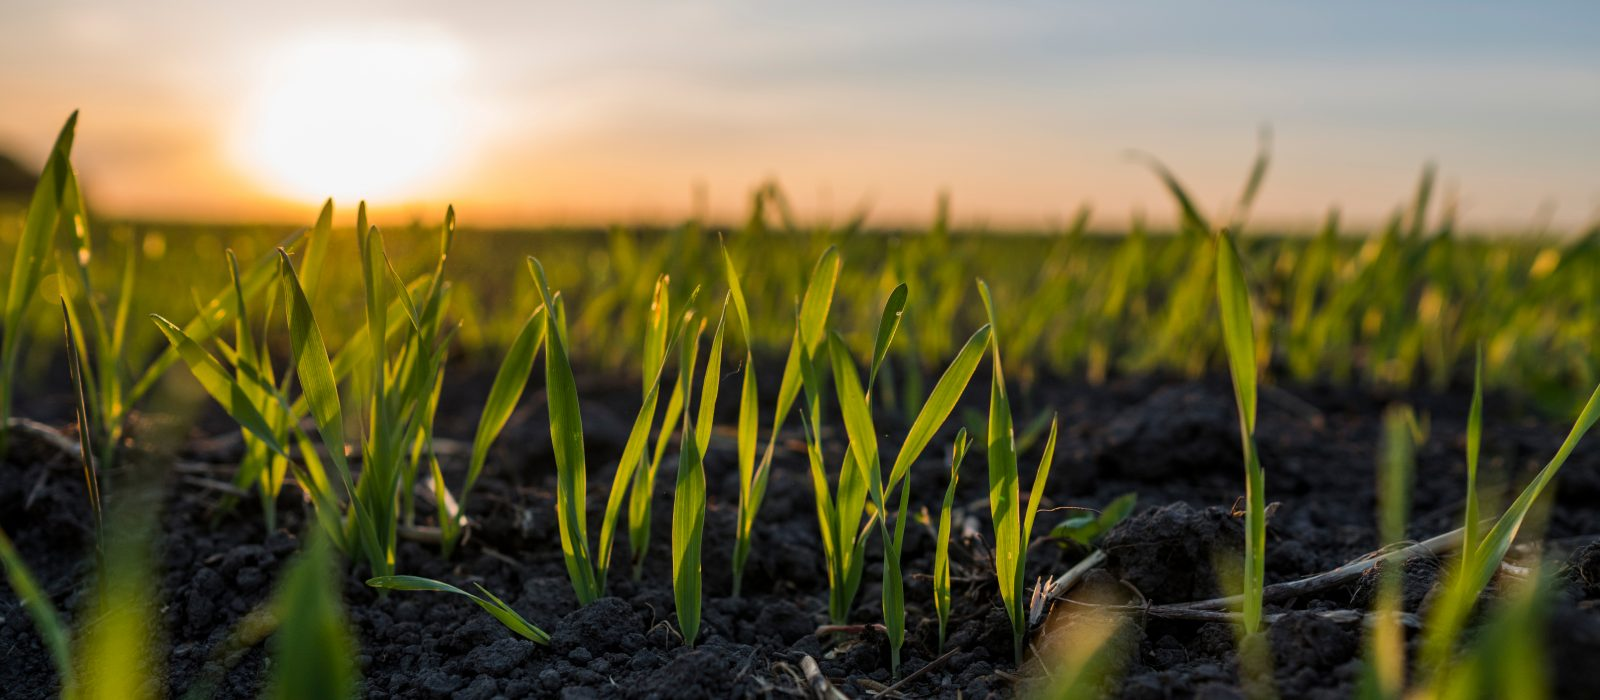 Image shows young wheat seedlings growing in a field